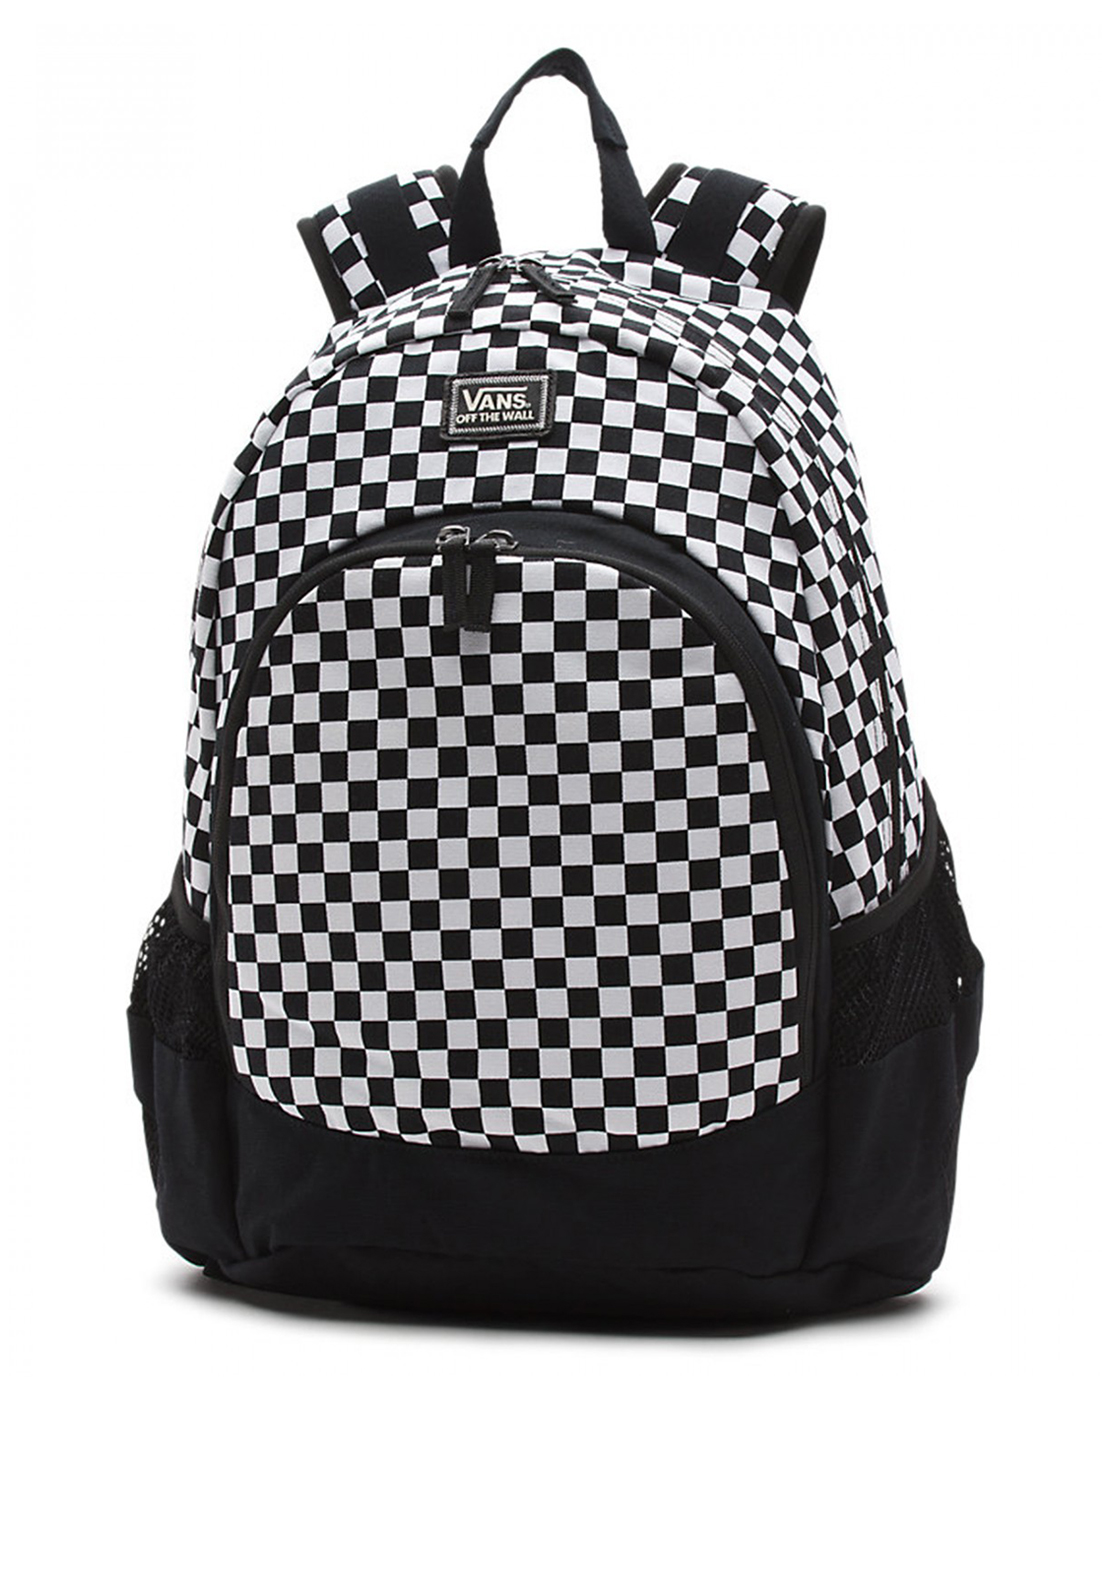 Vans Doren Chequered Backpack Schoolbag, Black and White